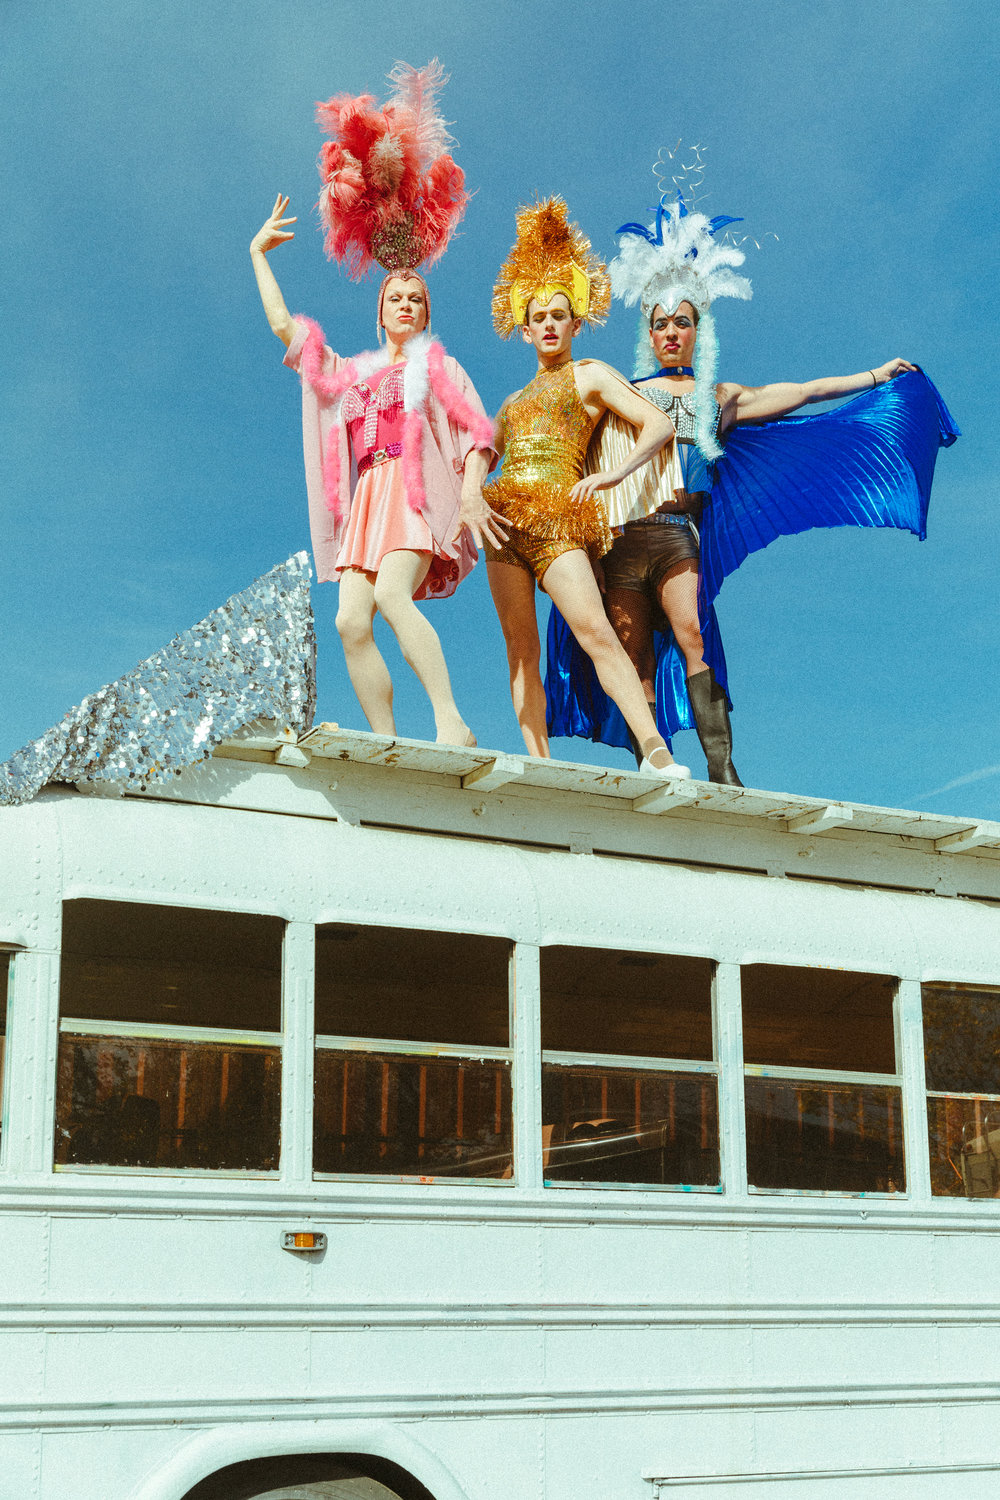 Tad Coughenour, Lyle Colby Mackston & Mario Burrell in Priscilla, Queen of the Desert. Photo by Mae Koo